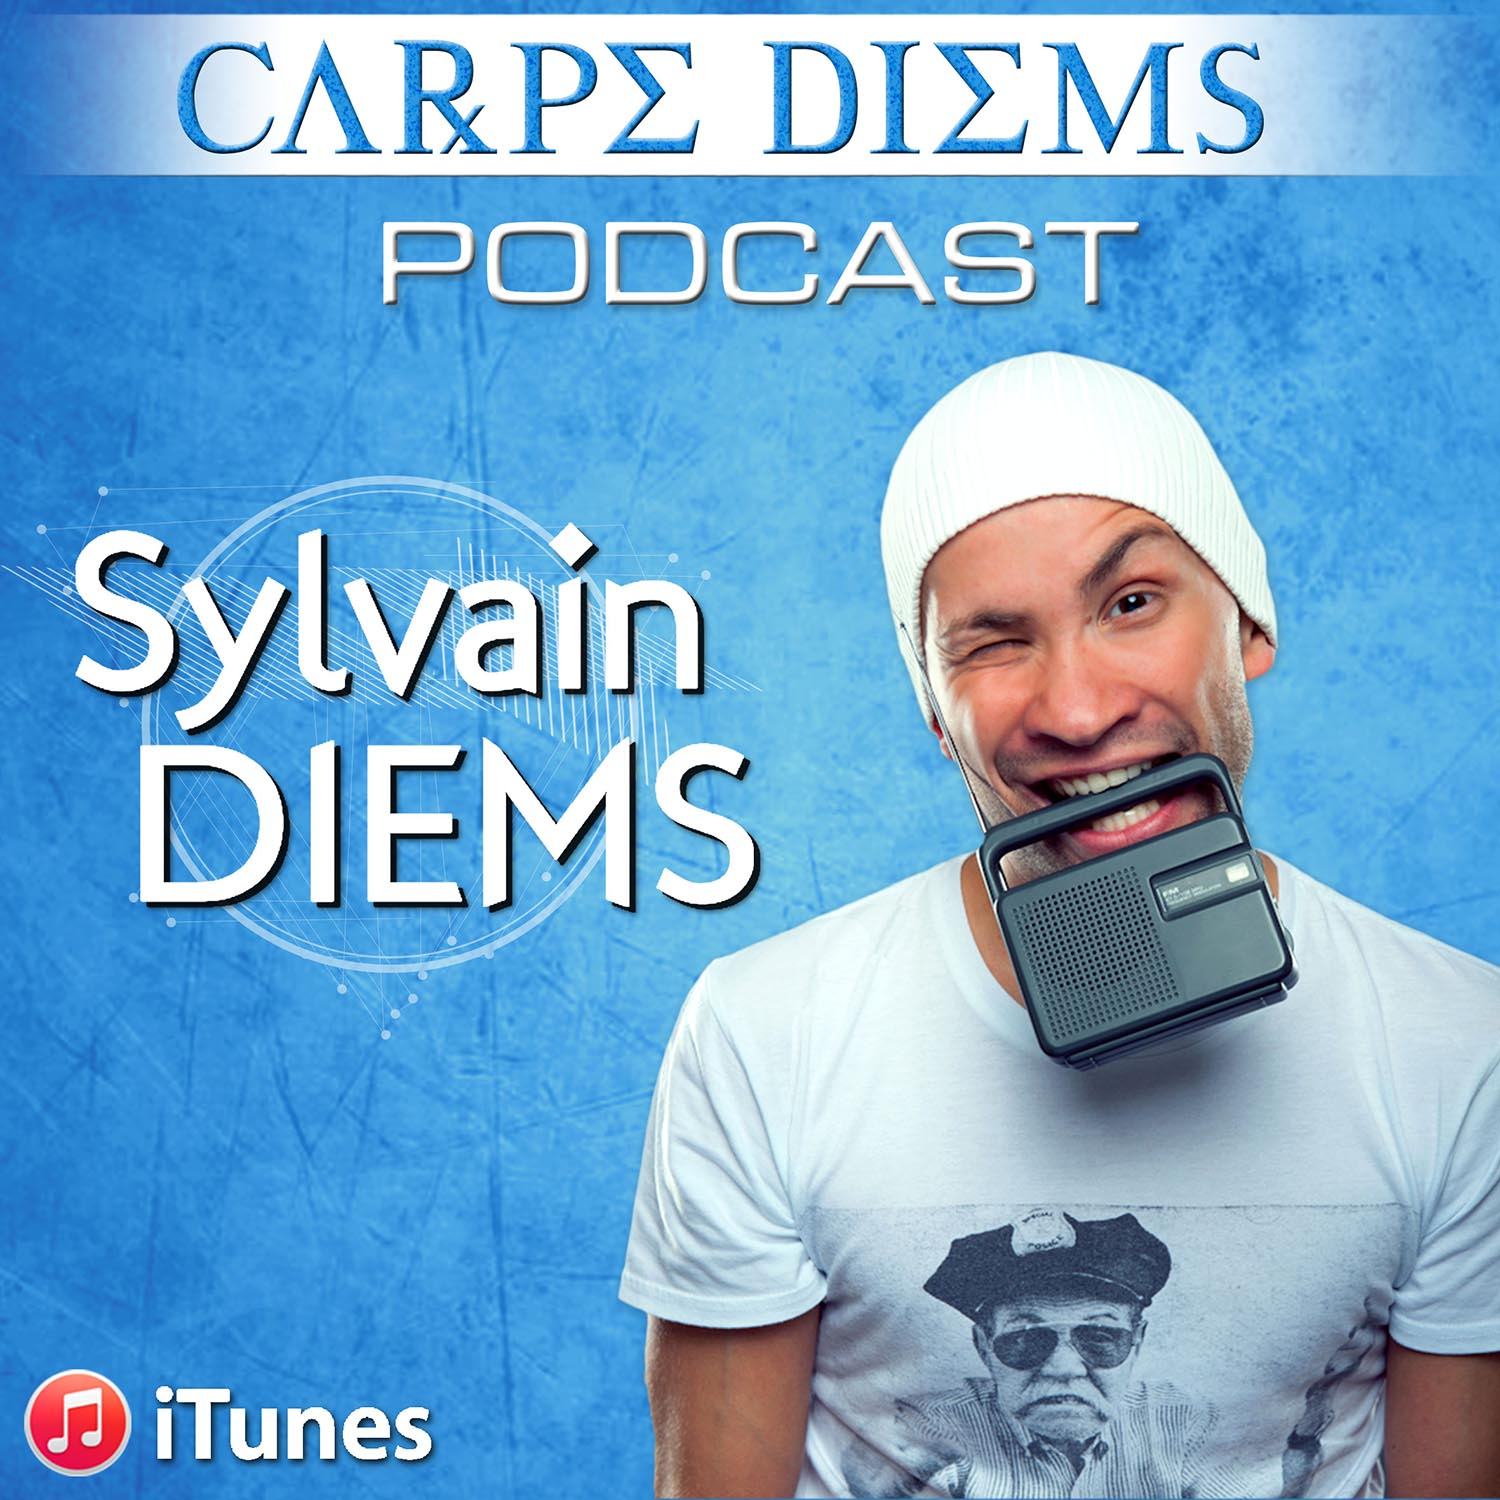 CARPE DIEMS podcast by SYLVAIN DIEMS